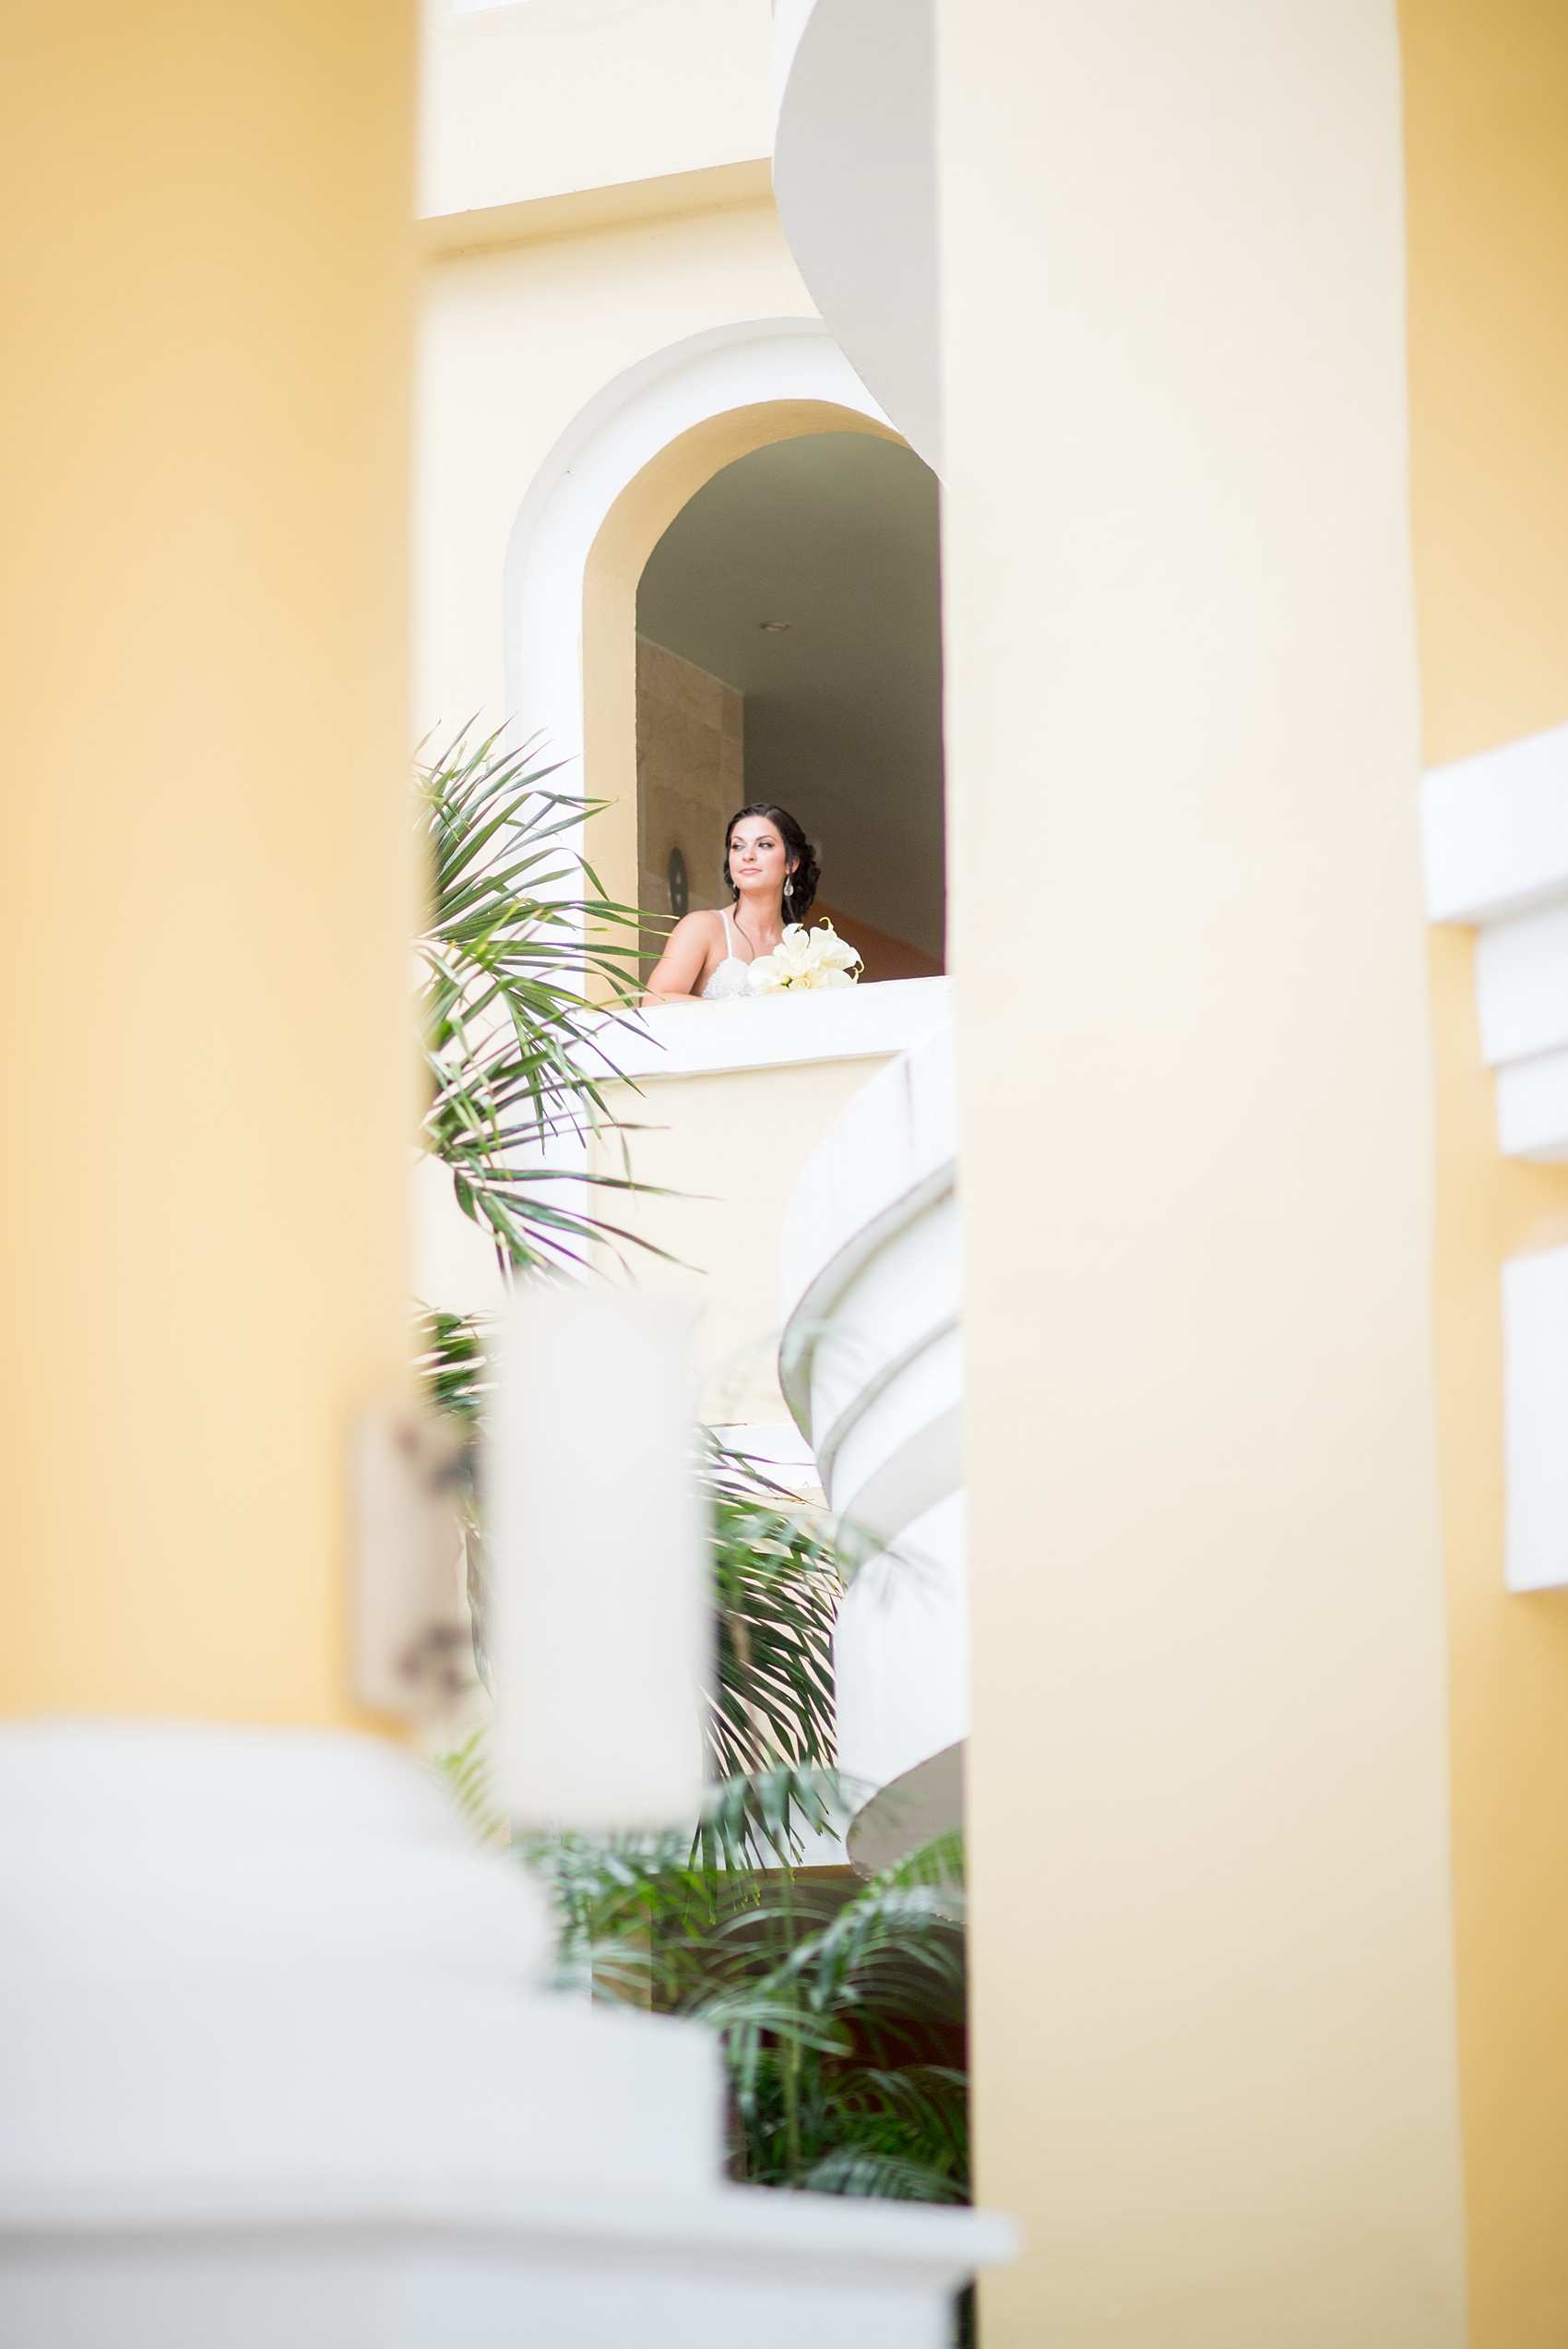 Mikkel Paige Photography photos from a wedding at Grand Paraiso, Mexico, Playa del Carmen Iberostar resort. Picture of the bride in a window frame staircase.